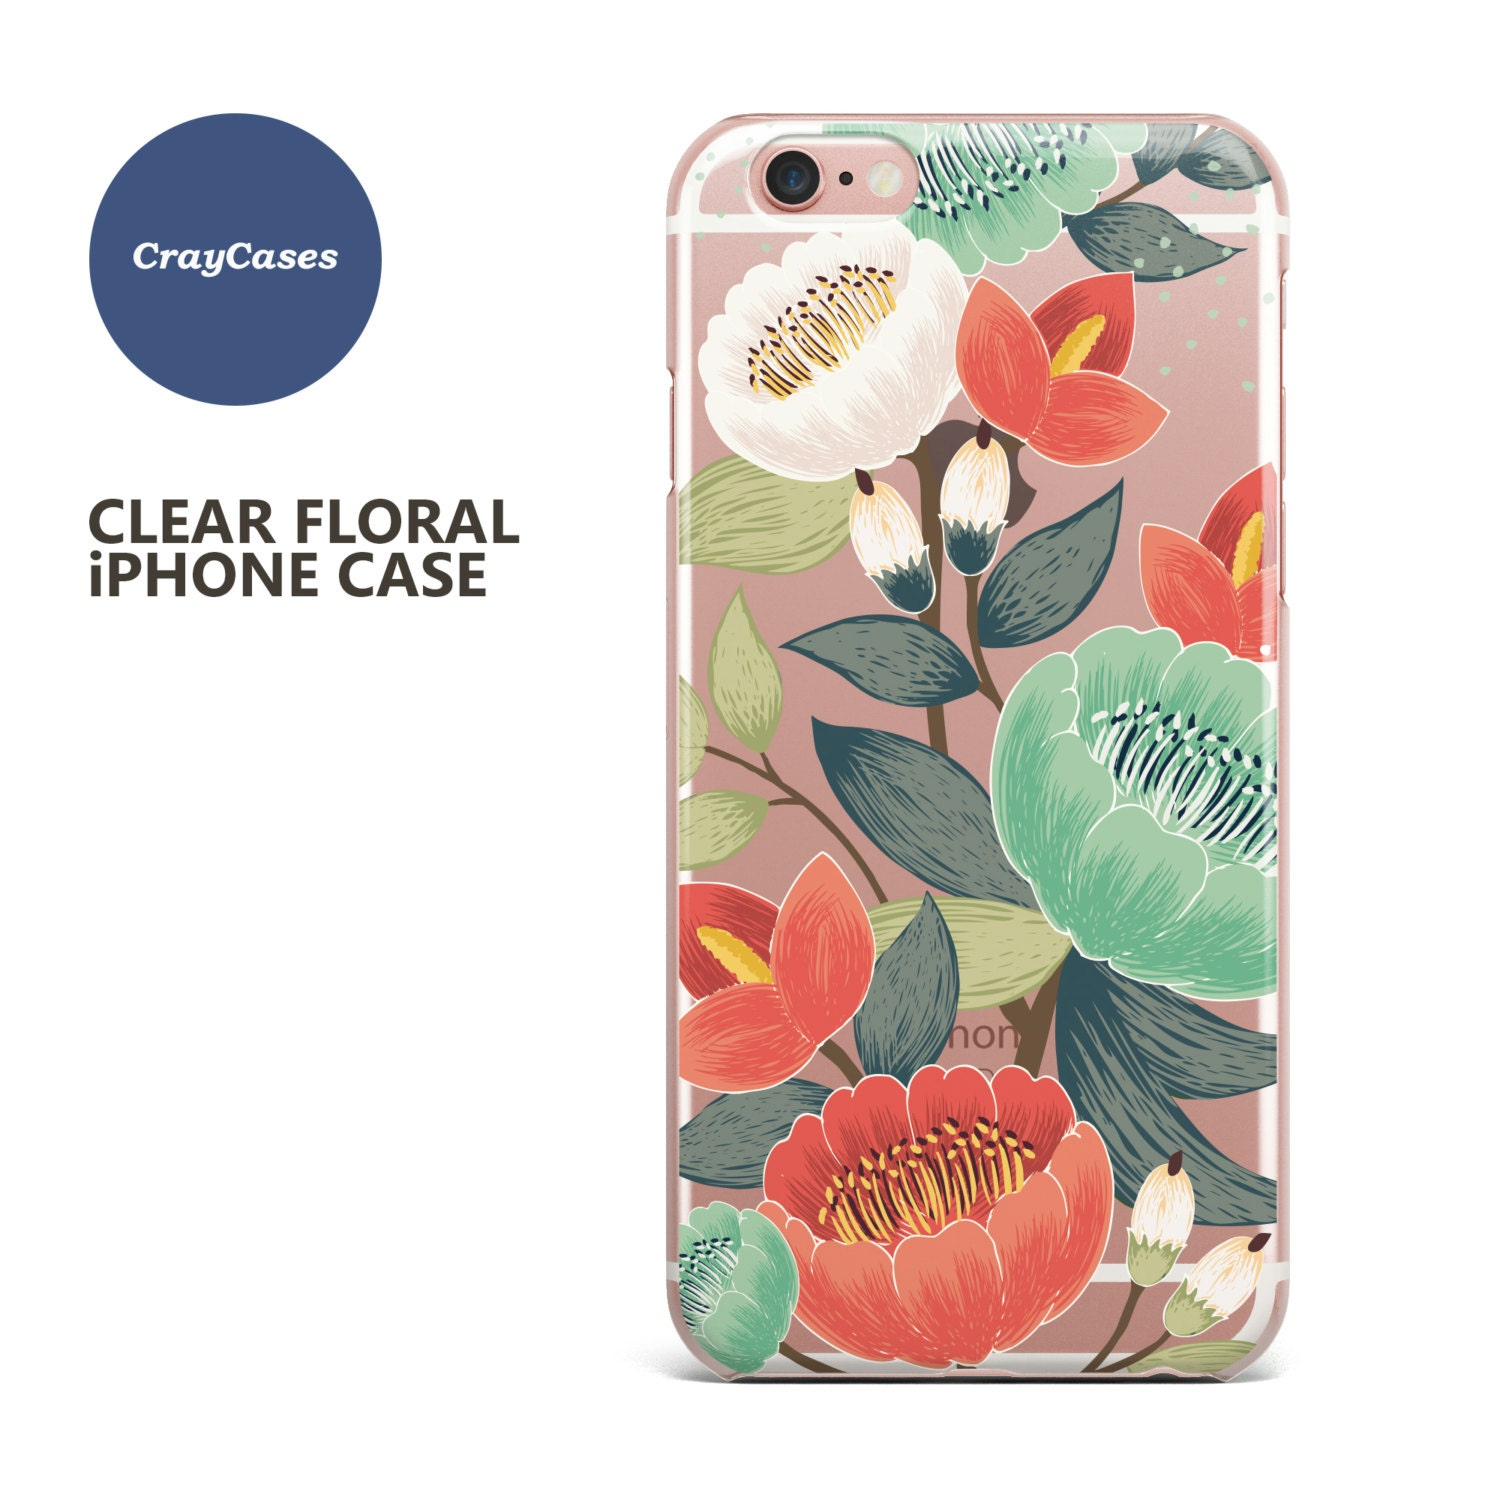 iPhone 6 Case iPhone 7 Case Floral iPhone 6s Case Floral iPhone 6s Plus Case Floral iPhone 6 Case Floral iPhone 6 Case Ships From UK